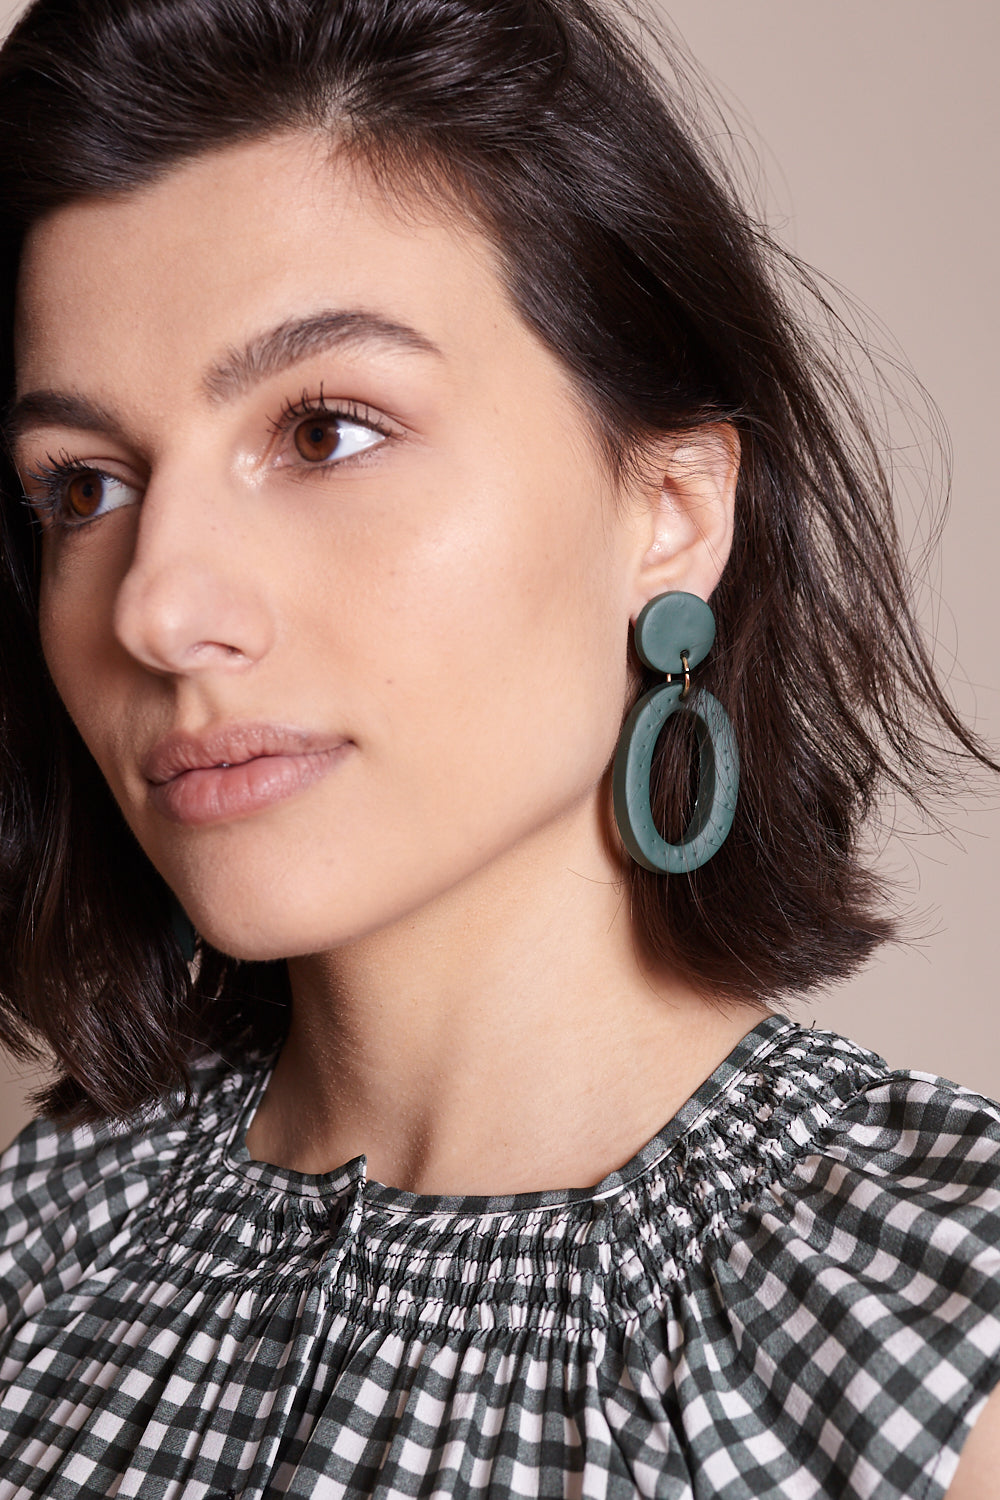 Jemma Earrings in Green Perf